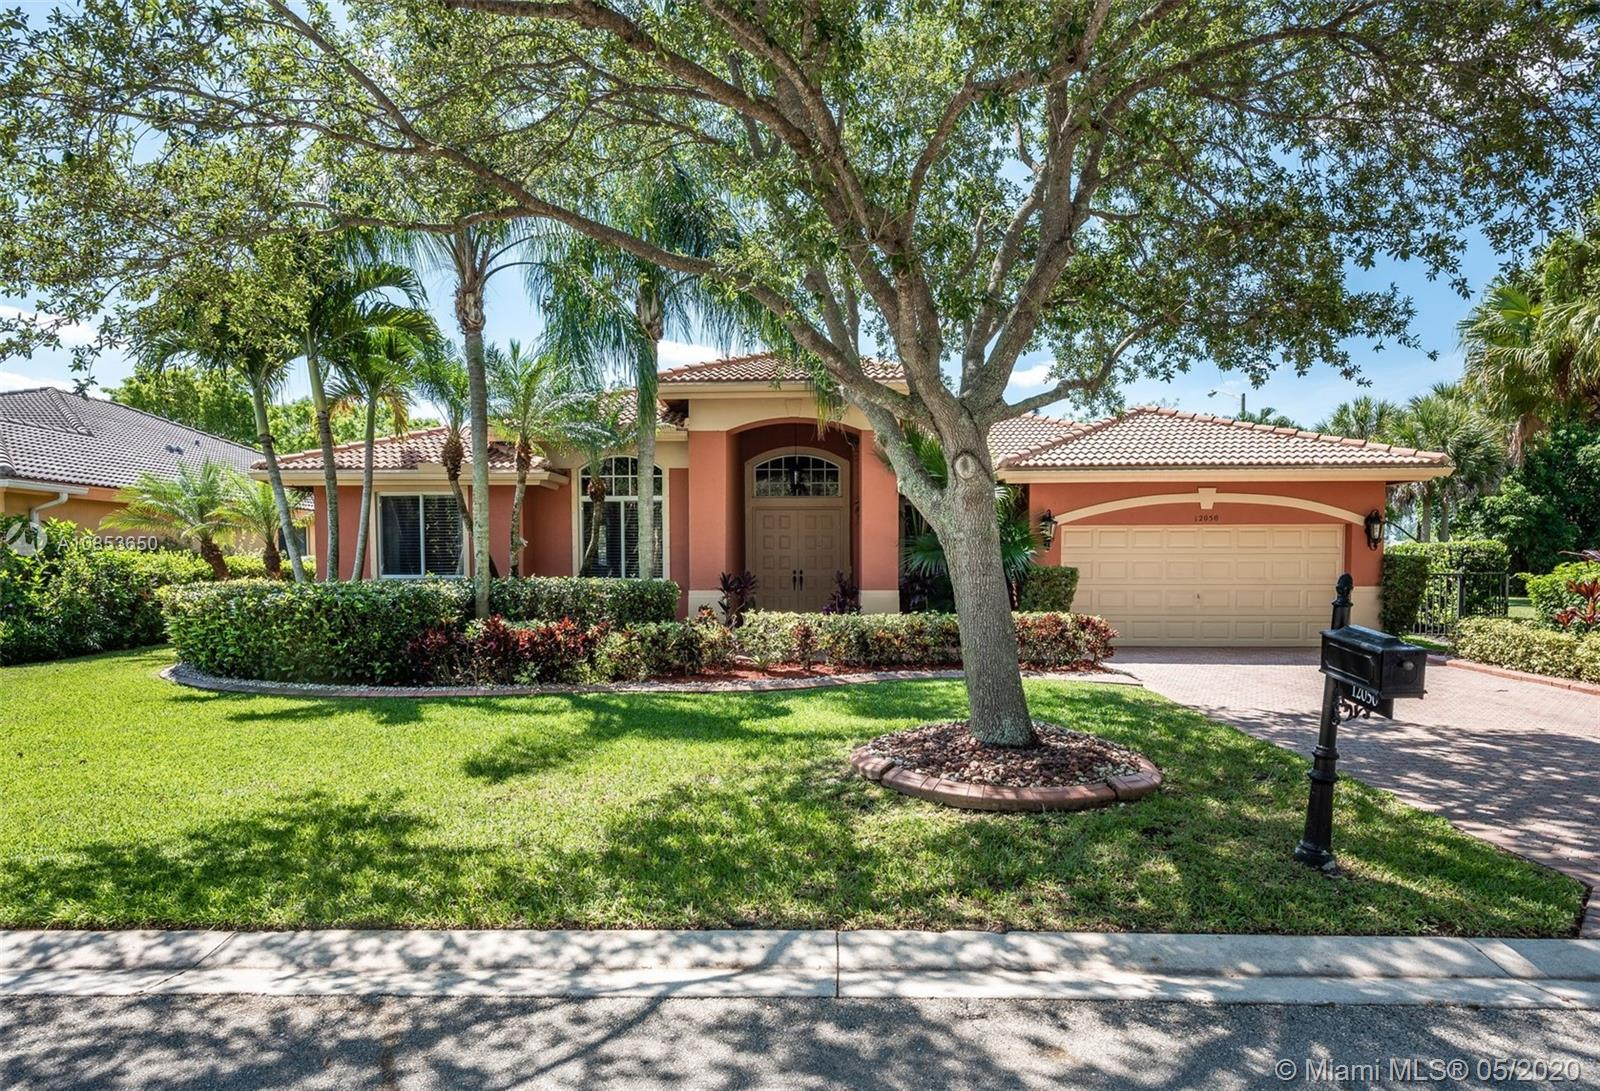 JUST REDUCED! Come and tour this beautiful, sun-lit, one story pool home in Mariner's Cove. This wonderfully maintained,open concept home offers 4 bedrooms(split plan), 2.5 baths, formal dining room, living room, great room off the kitchen which leads to your pool & covered patio. The master suite is a homeowner's dream! The bath boasts a corner jetted tub, large walk in shower, double vanities, & separate toilet room. The walk in closet is enormous & has perfect built-ins. The bedroom has hardwood flooring,is very generous in size & has a door that leads out to your patio. Great sized secondary bedrooms with plenty of storage & winderfully updated full bath, Extras: Solar heater for the pool, yard is fully fenced & the driveway can easily fit 4 cars. Please see our 3D Tour!